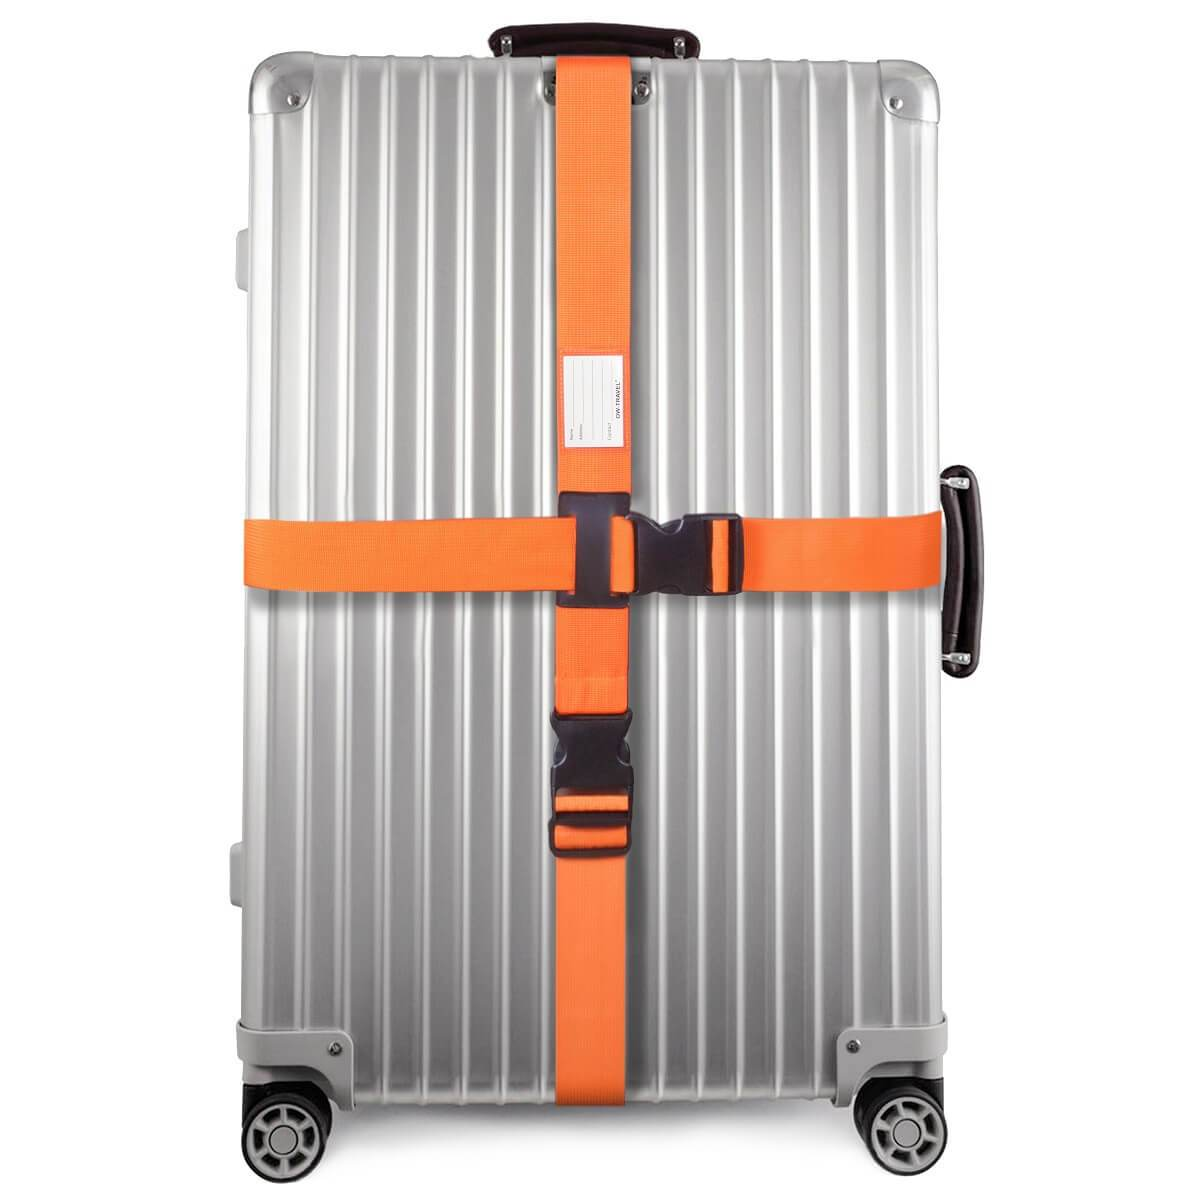 OW Travel Personalised Luggage Case Cross Straps for Suitcases and Luggage - Orange 1 Pack - Suitcase with Heavy Duty Luggage Strap